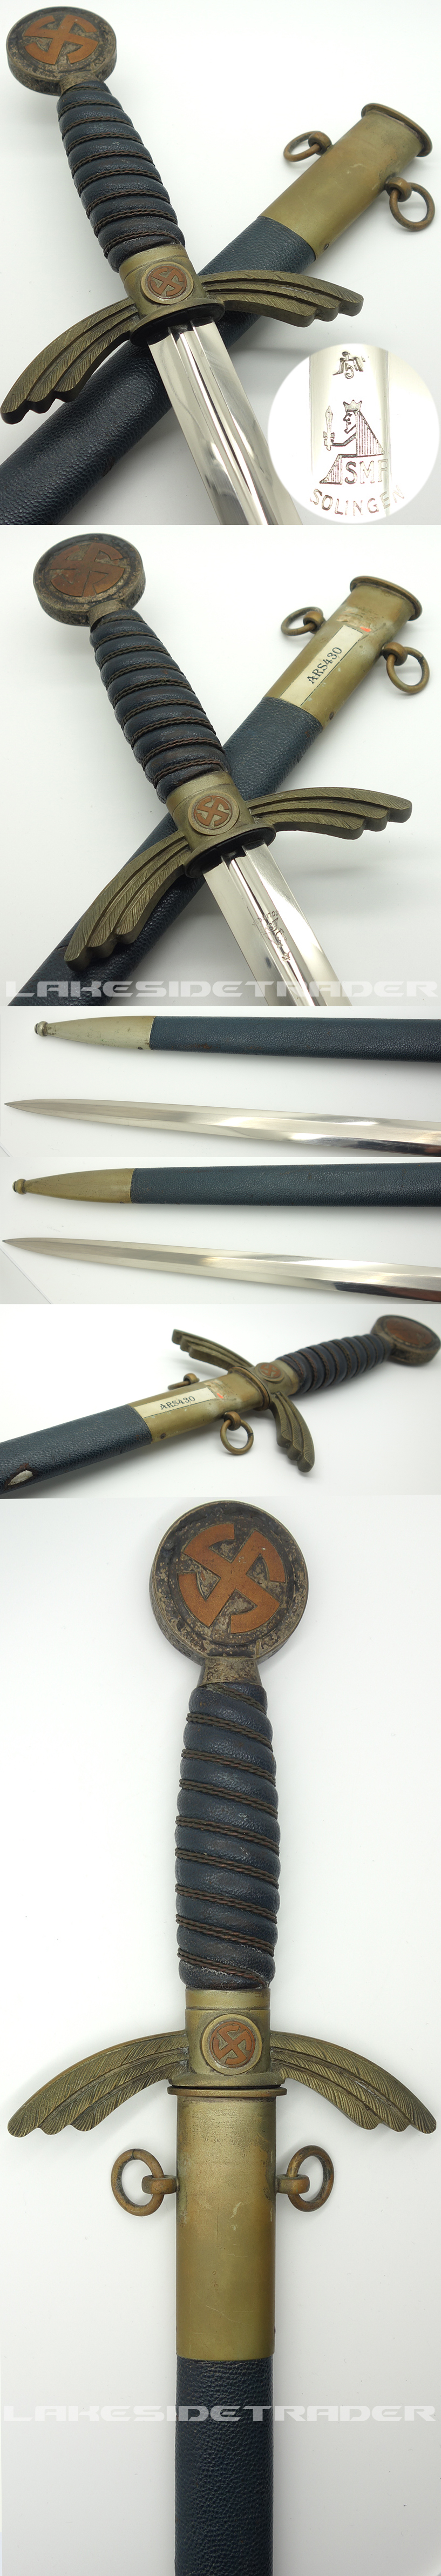 Early uncleaned SMF Luftwaffe Sword